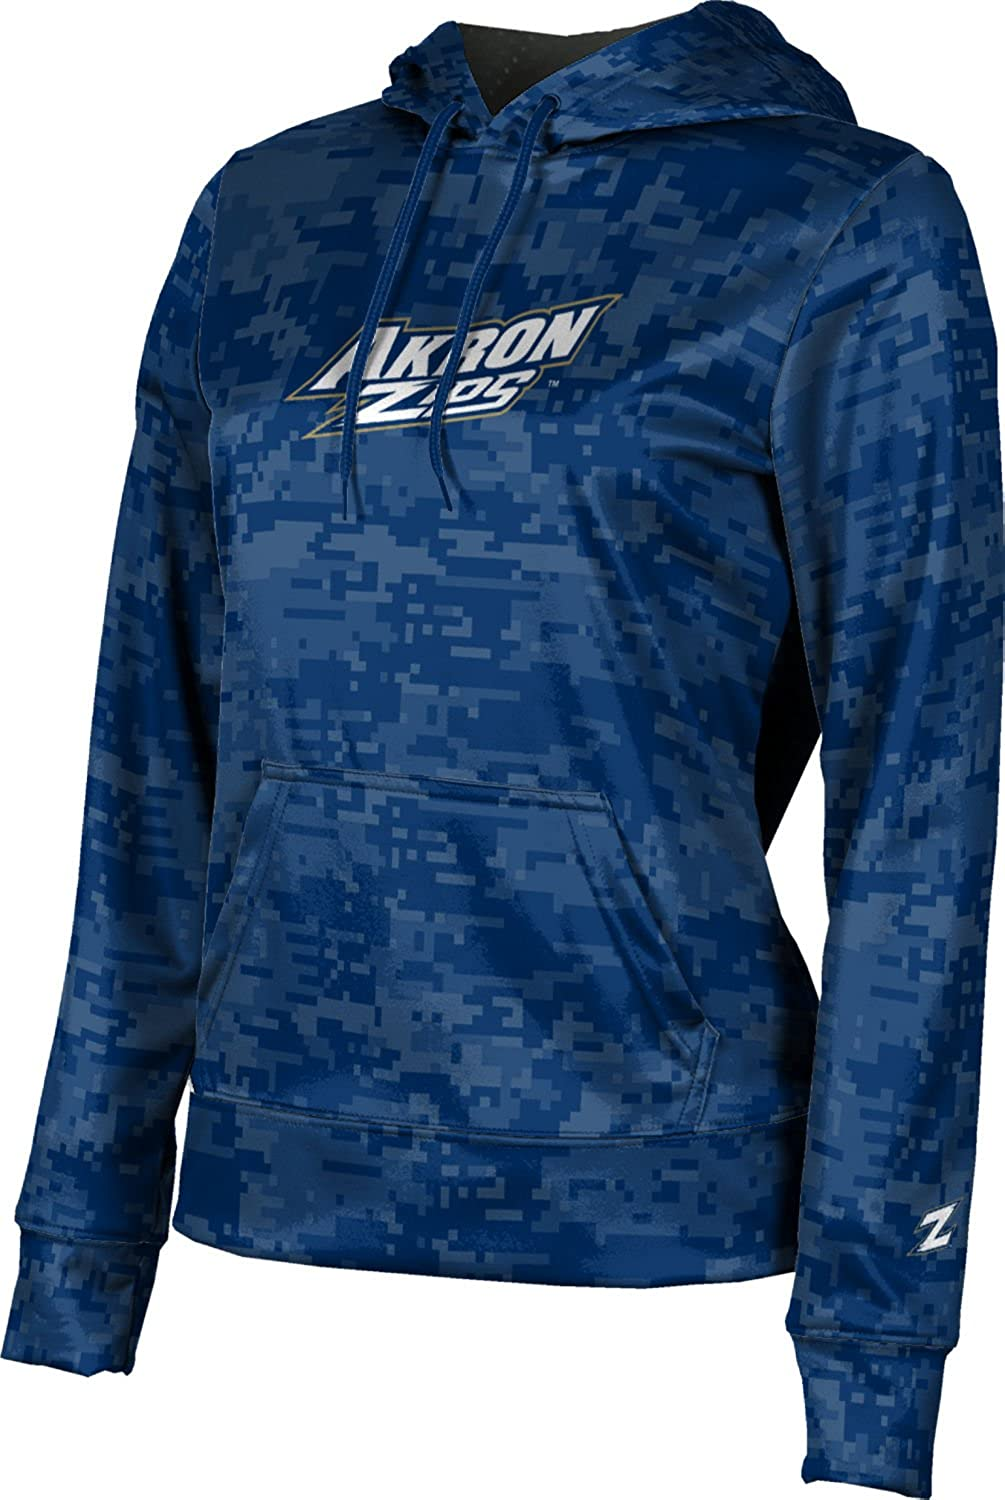 ProSphere University of Akron Girls' Pullover Hoodie - Digi Camo